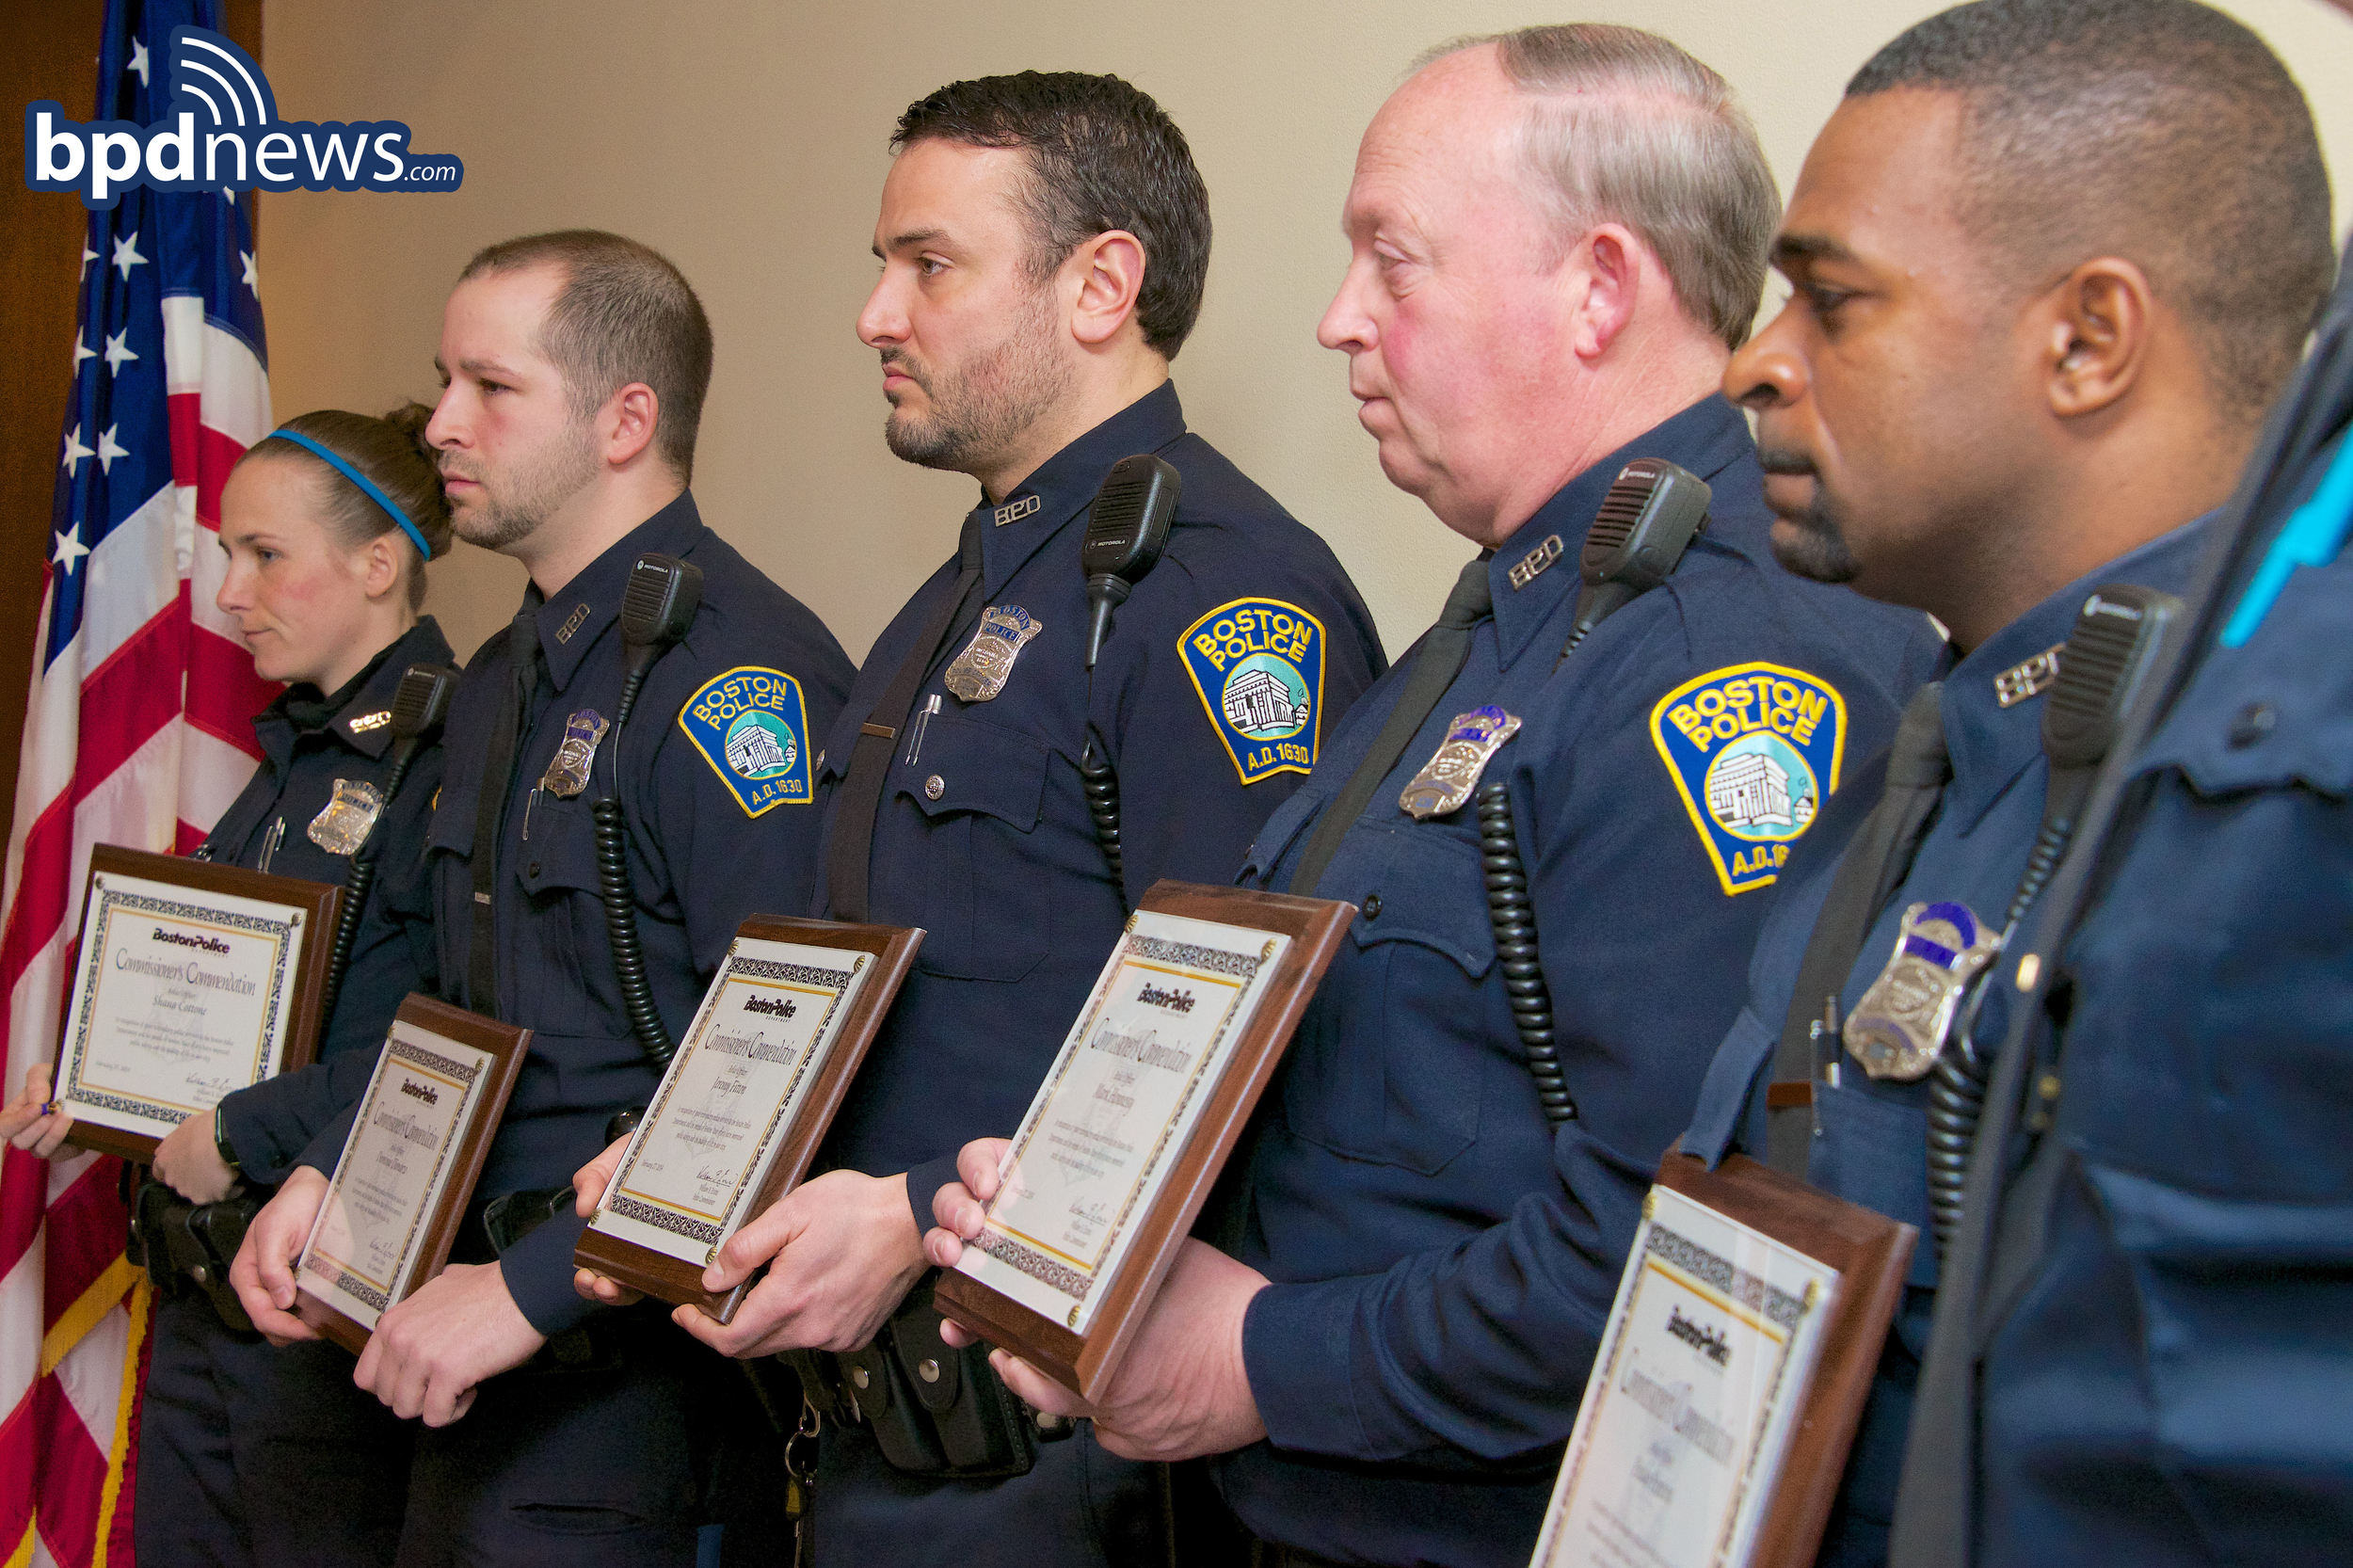 A-7 OFFICERS RECEIVING A COMMENDATION